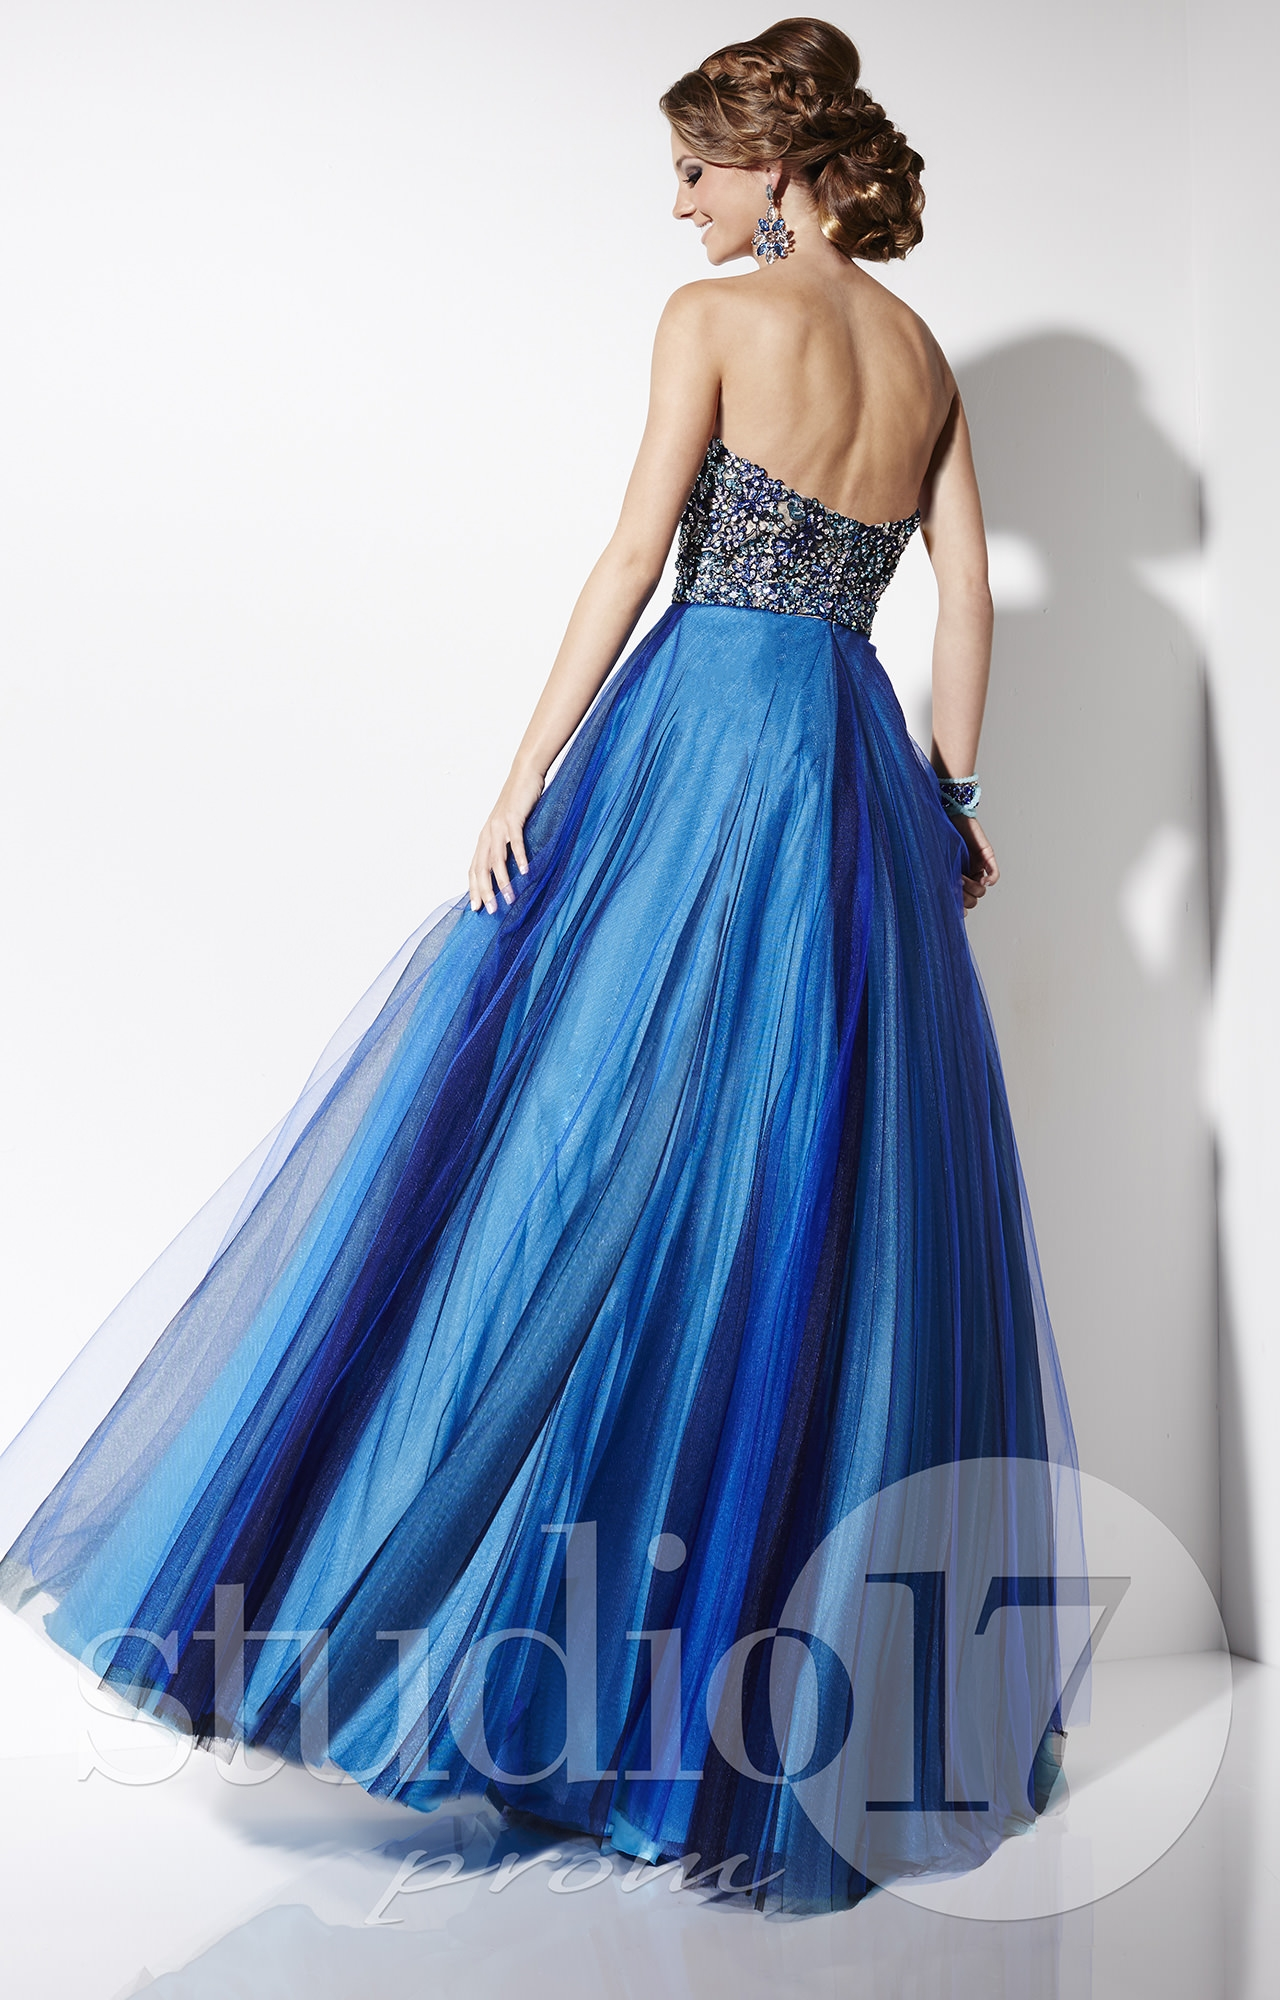 Studio 17 12573 - What Dreams Are Made of Gown Prom Dress